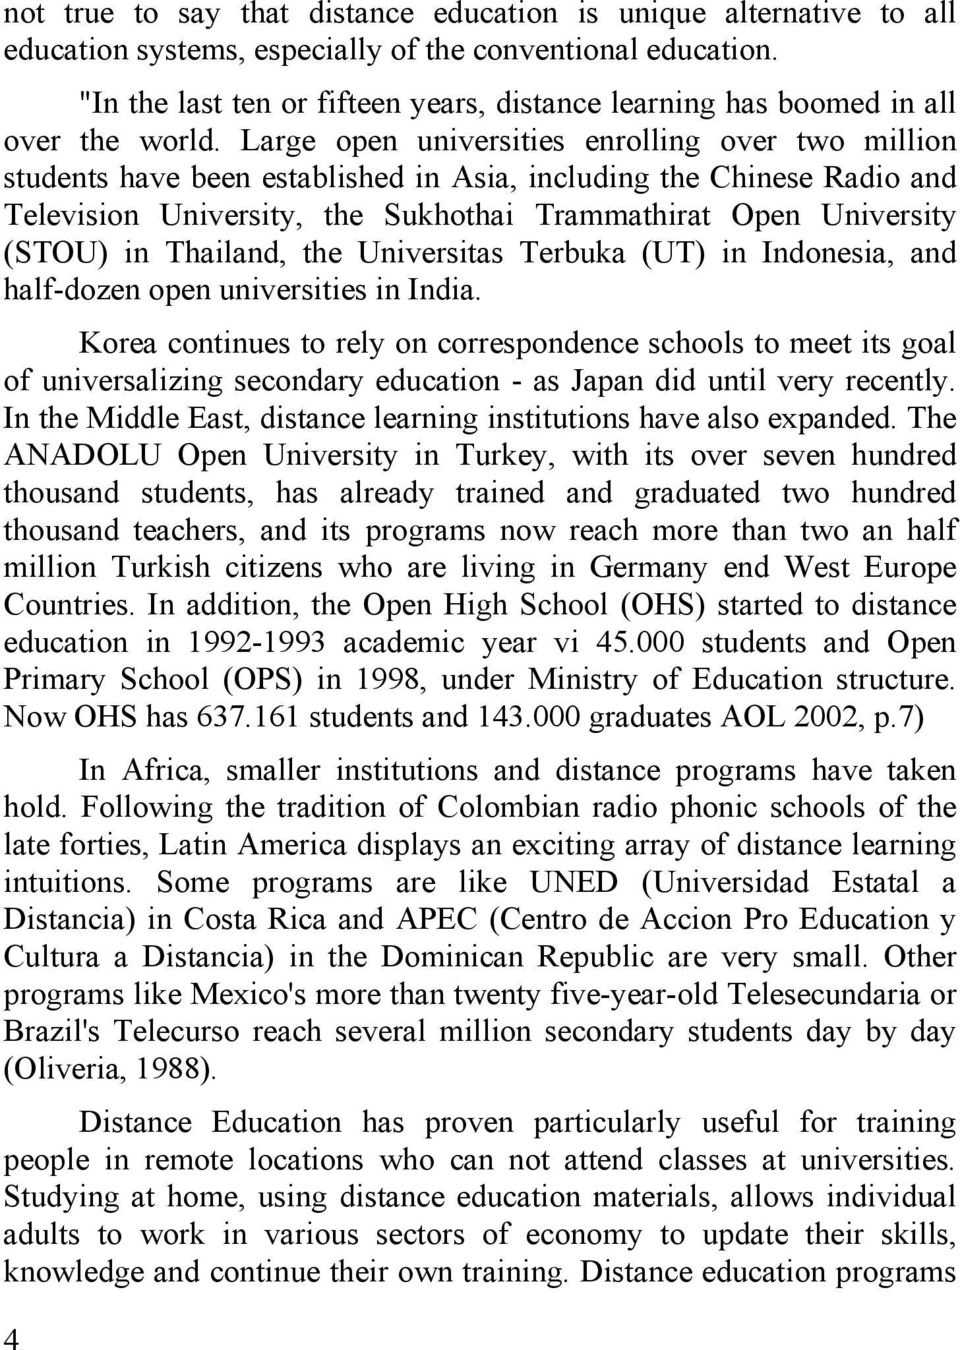 Large open universities enrolling over two million students have been established in Asia, including the Chinese Radio and Television University, the Sukhothai Trammathirat Open University (STOU) in